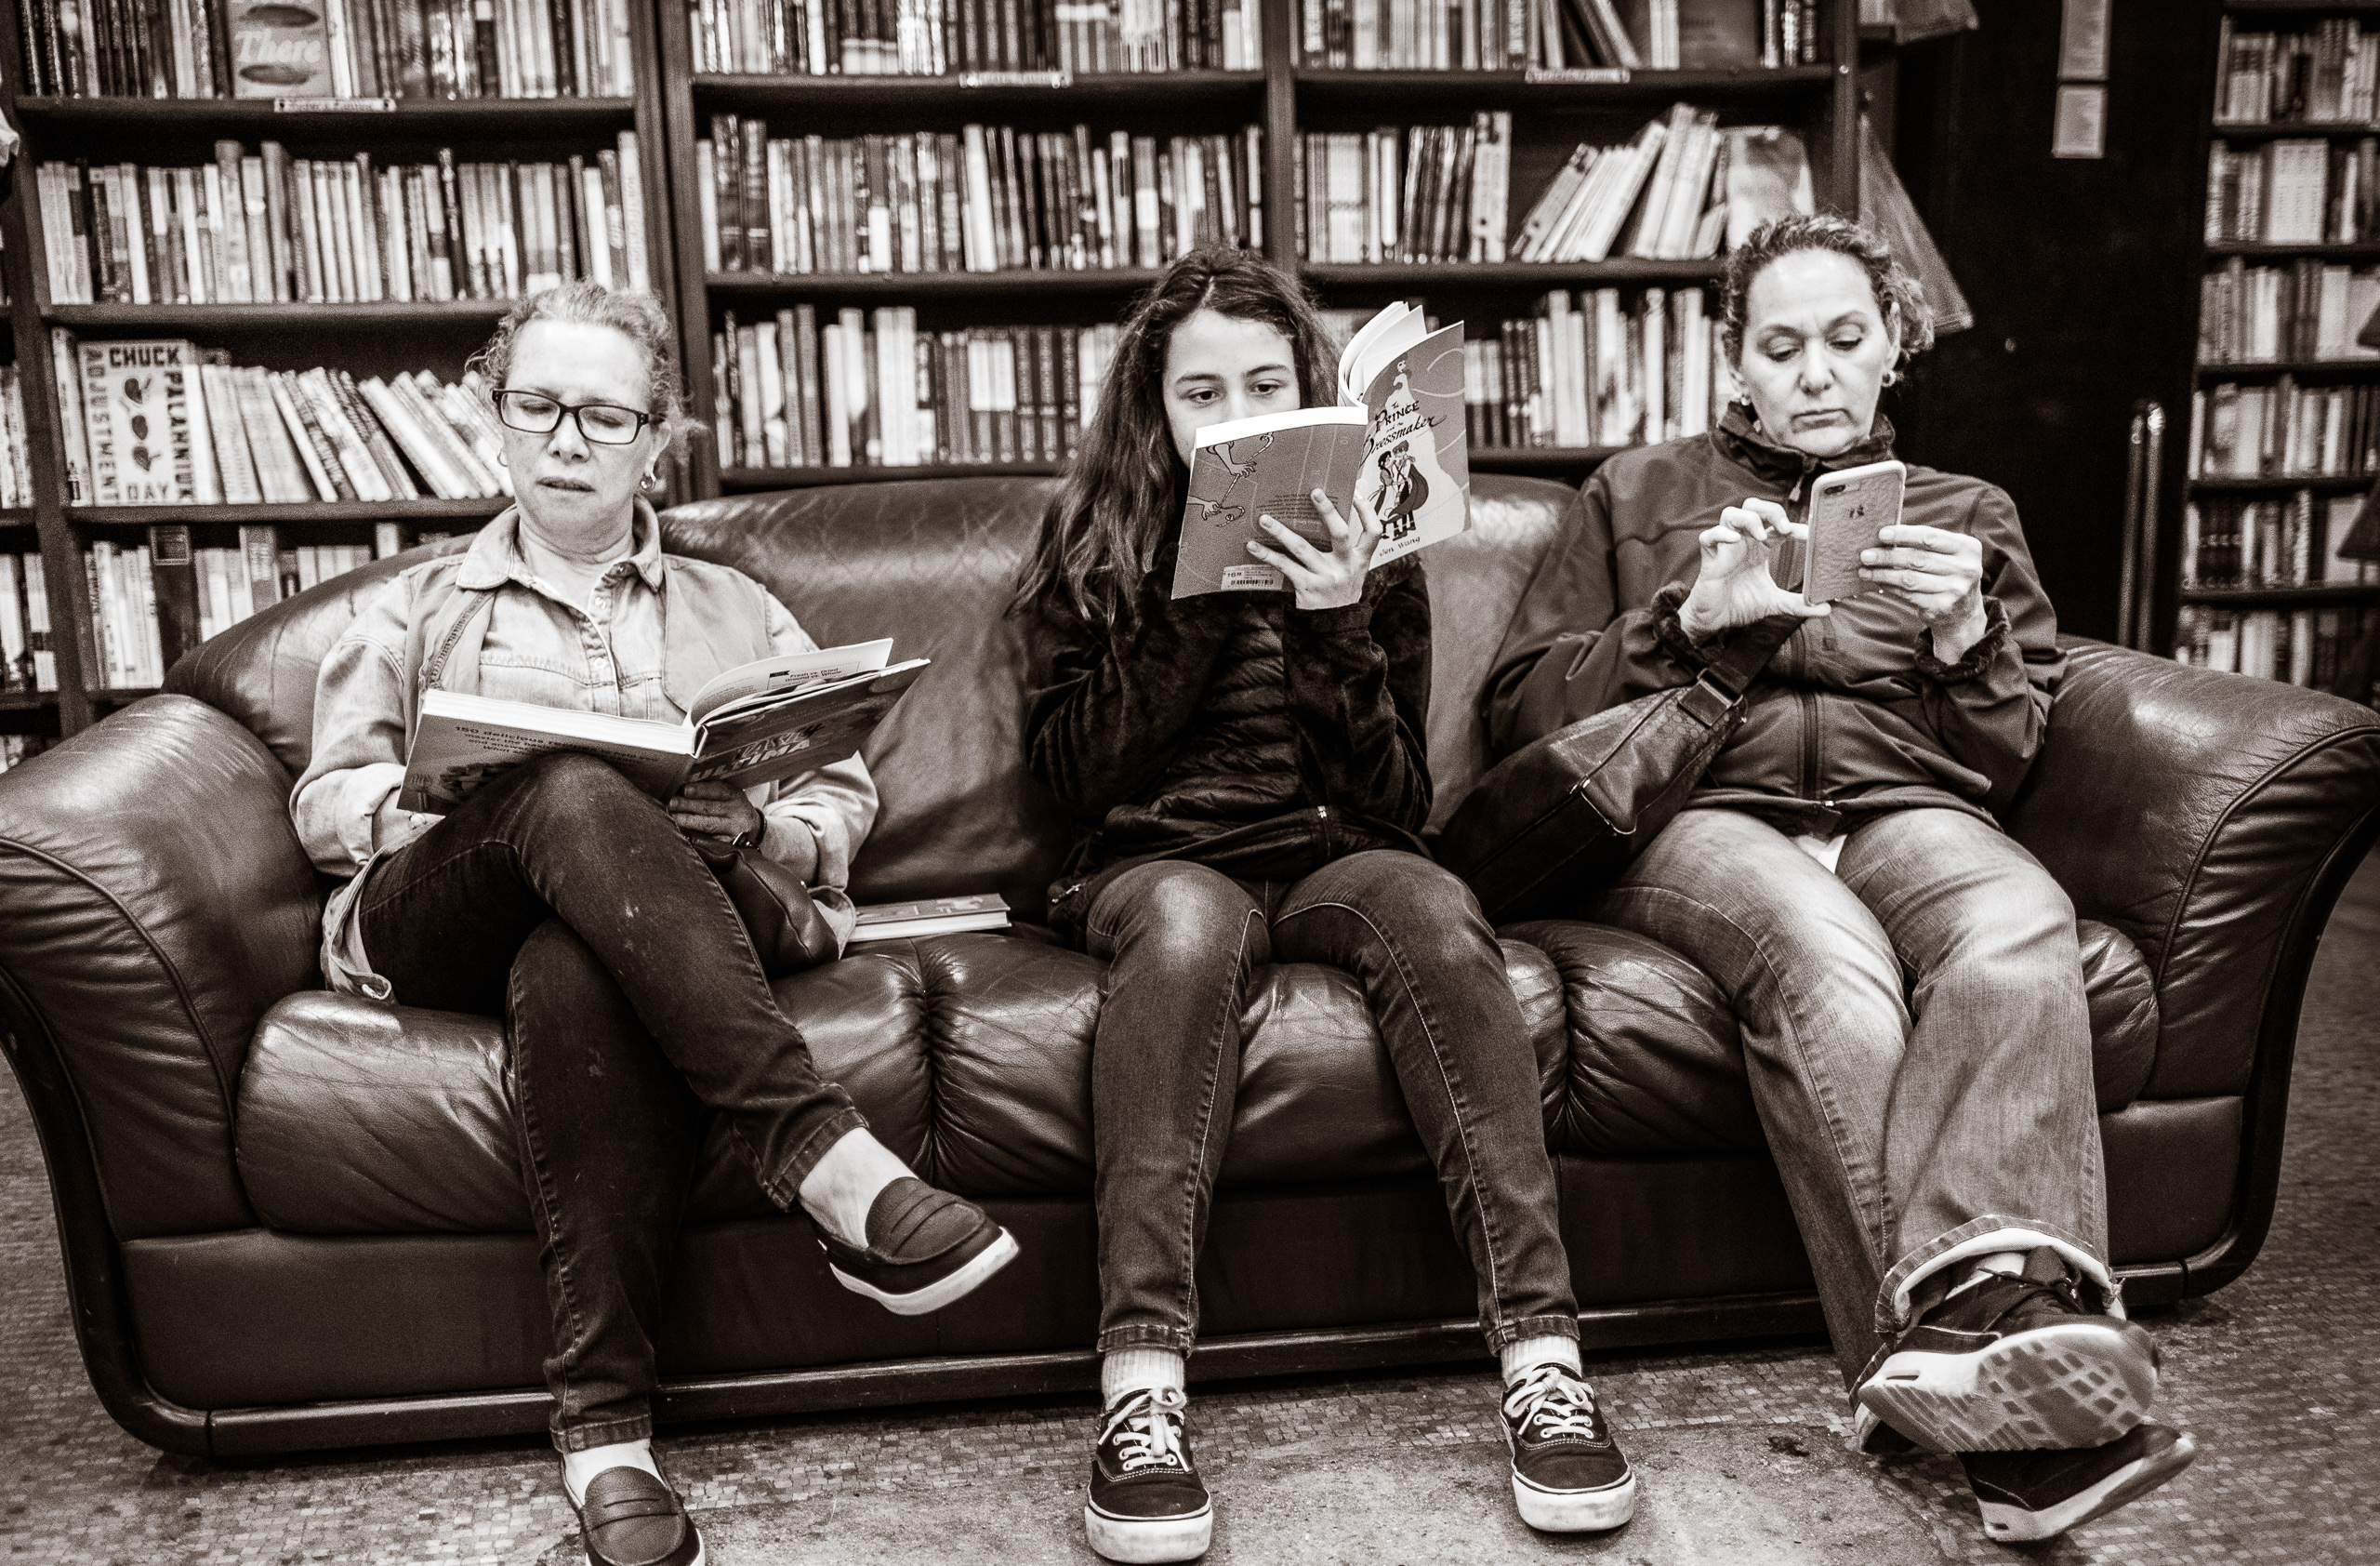 Two women and a girl sit on a couch inside The Last Bookstore in Downtown Los Angeles. The girl and one of the women are reading books. The other woman is doing something on her phone.